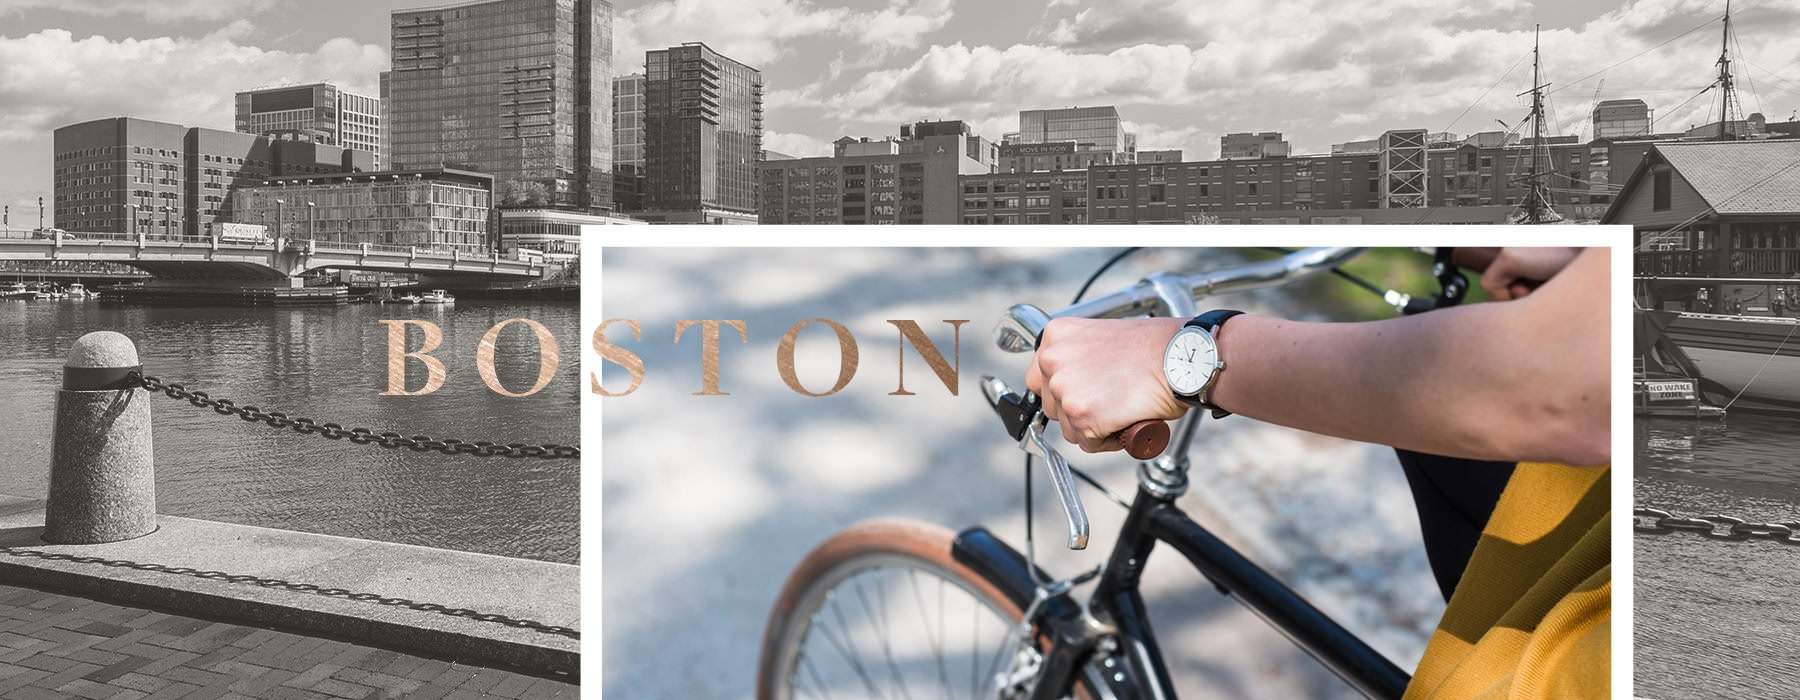 collage of man on bicycle and background image of the Boston skyline